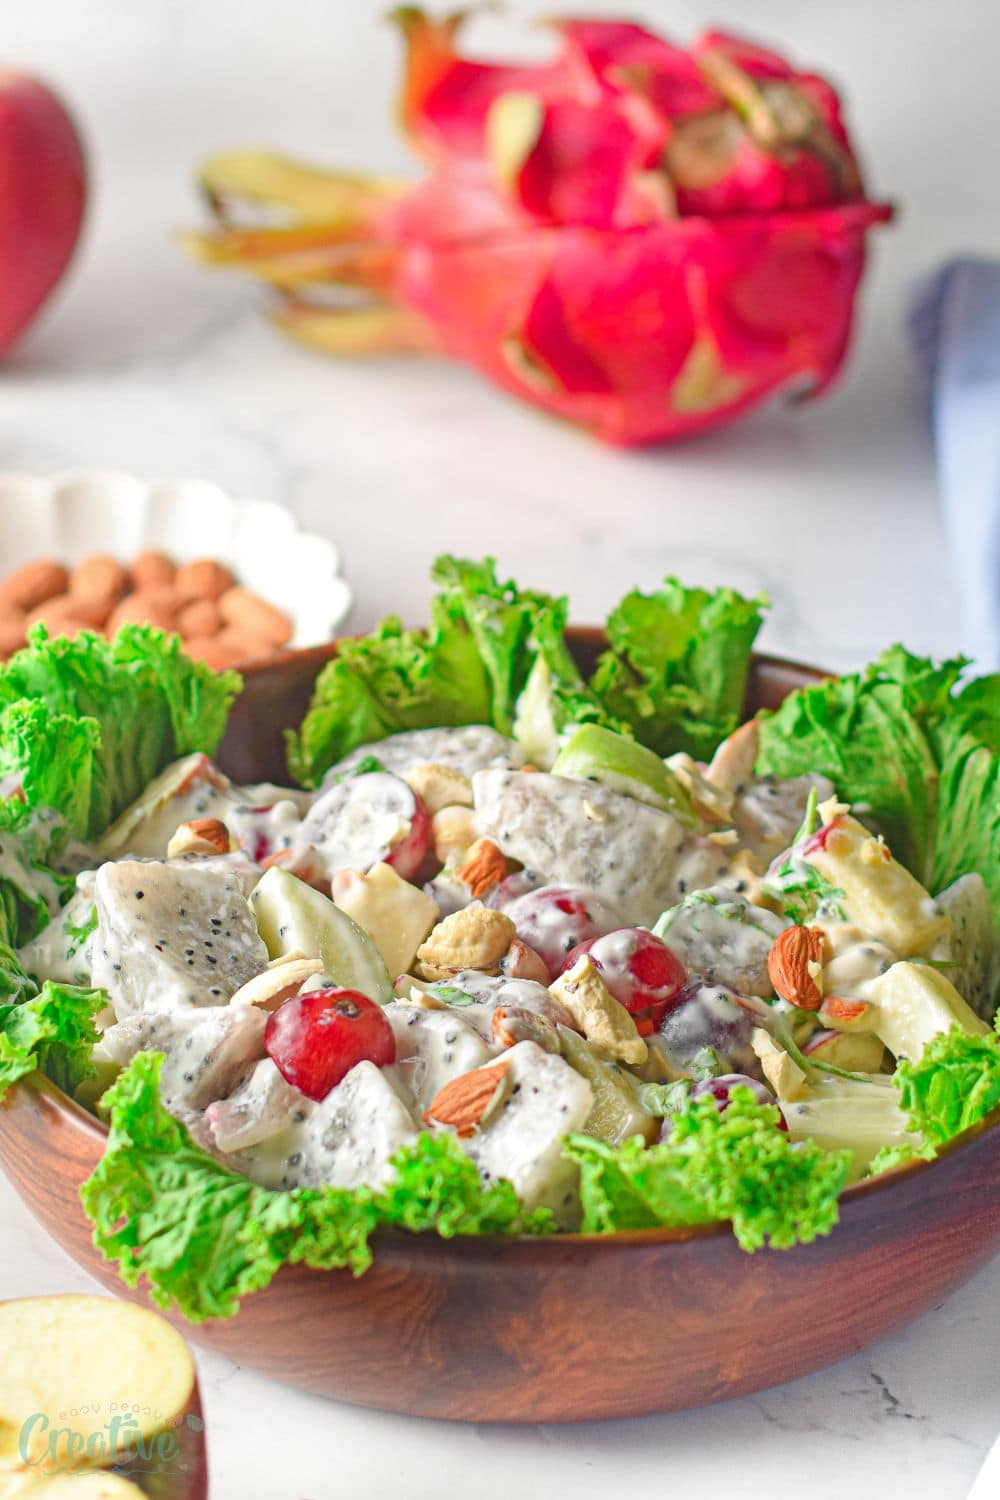 Close up image of modern Waldorf salad prepared with dragon fruit and displayed on a bed of lettuce, in a brown salad bowl